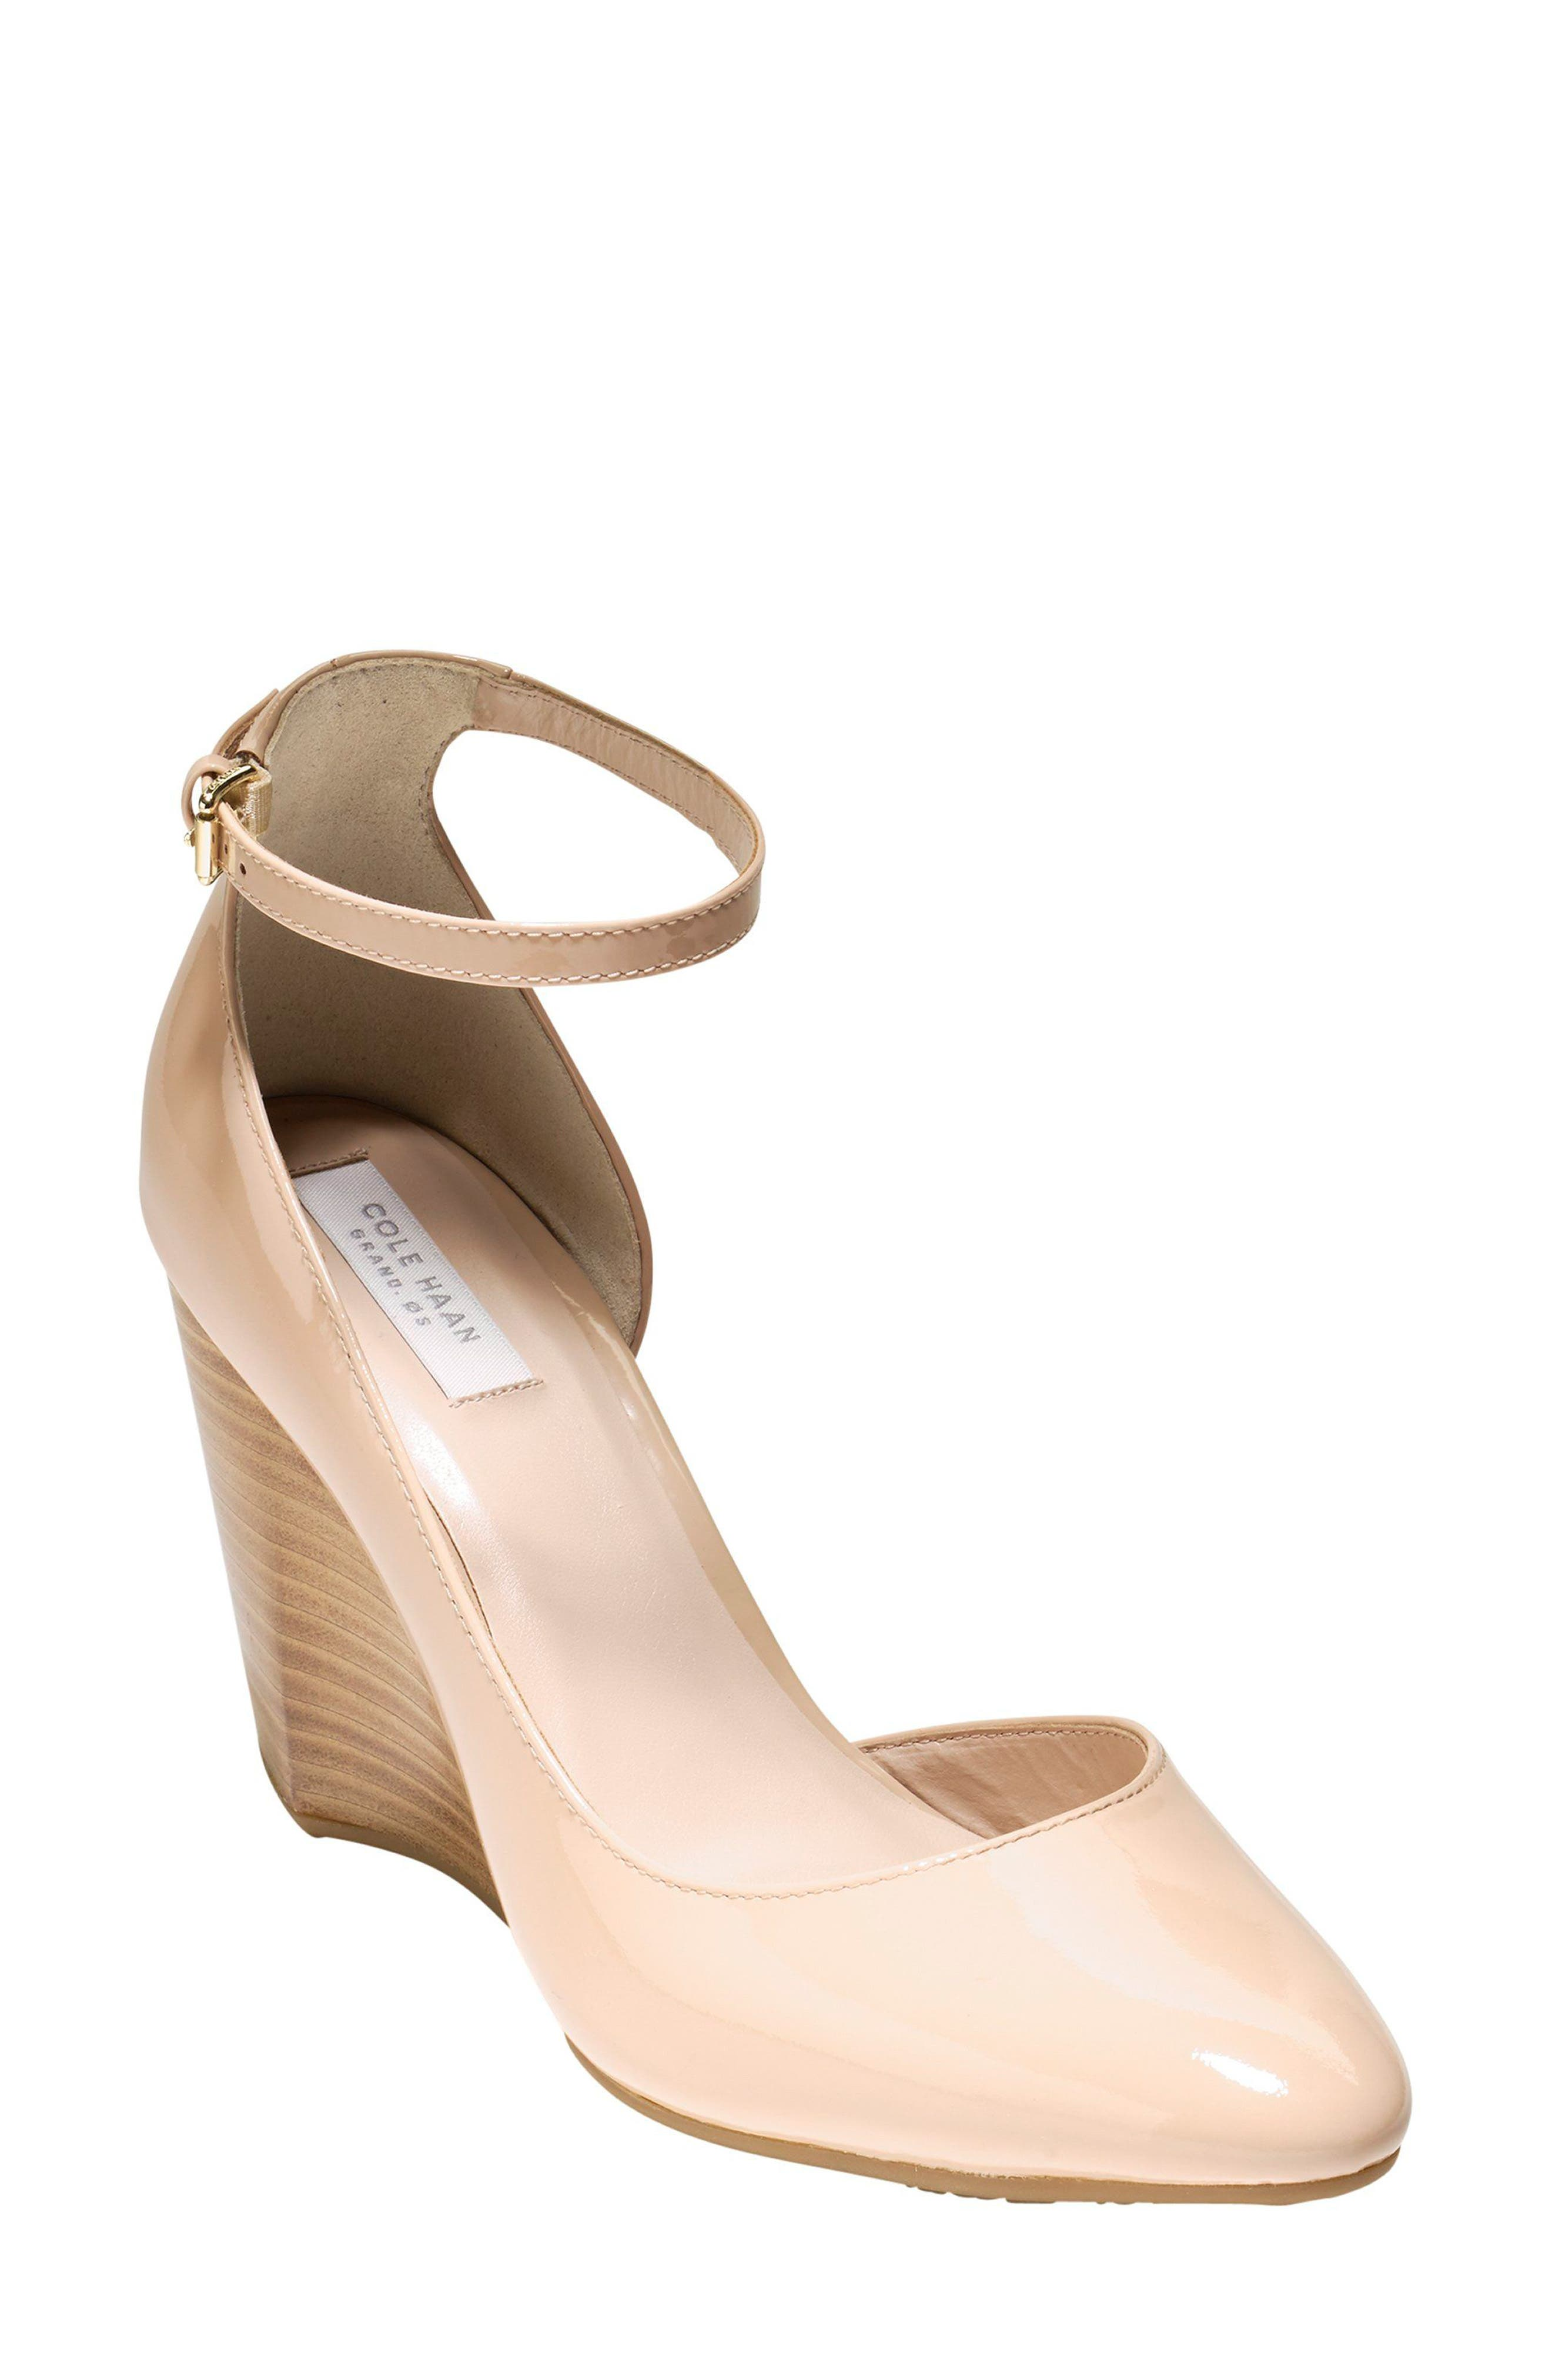 Image of Cole Haan Lacey Wedge Pump